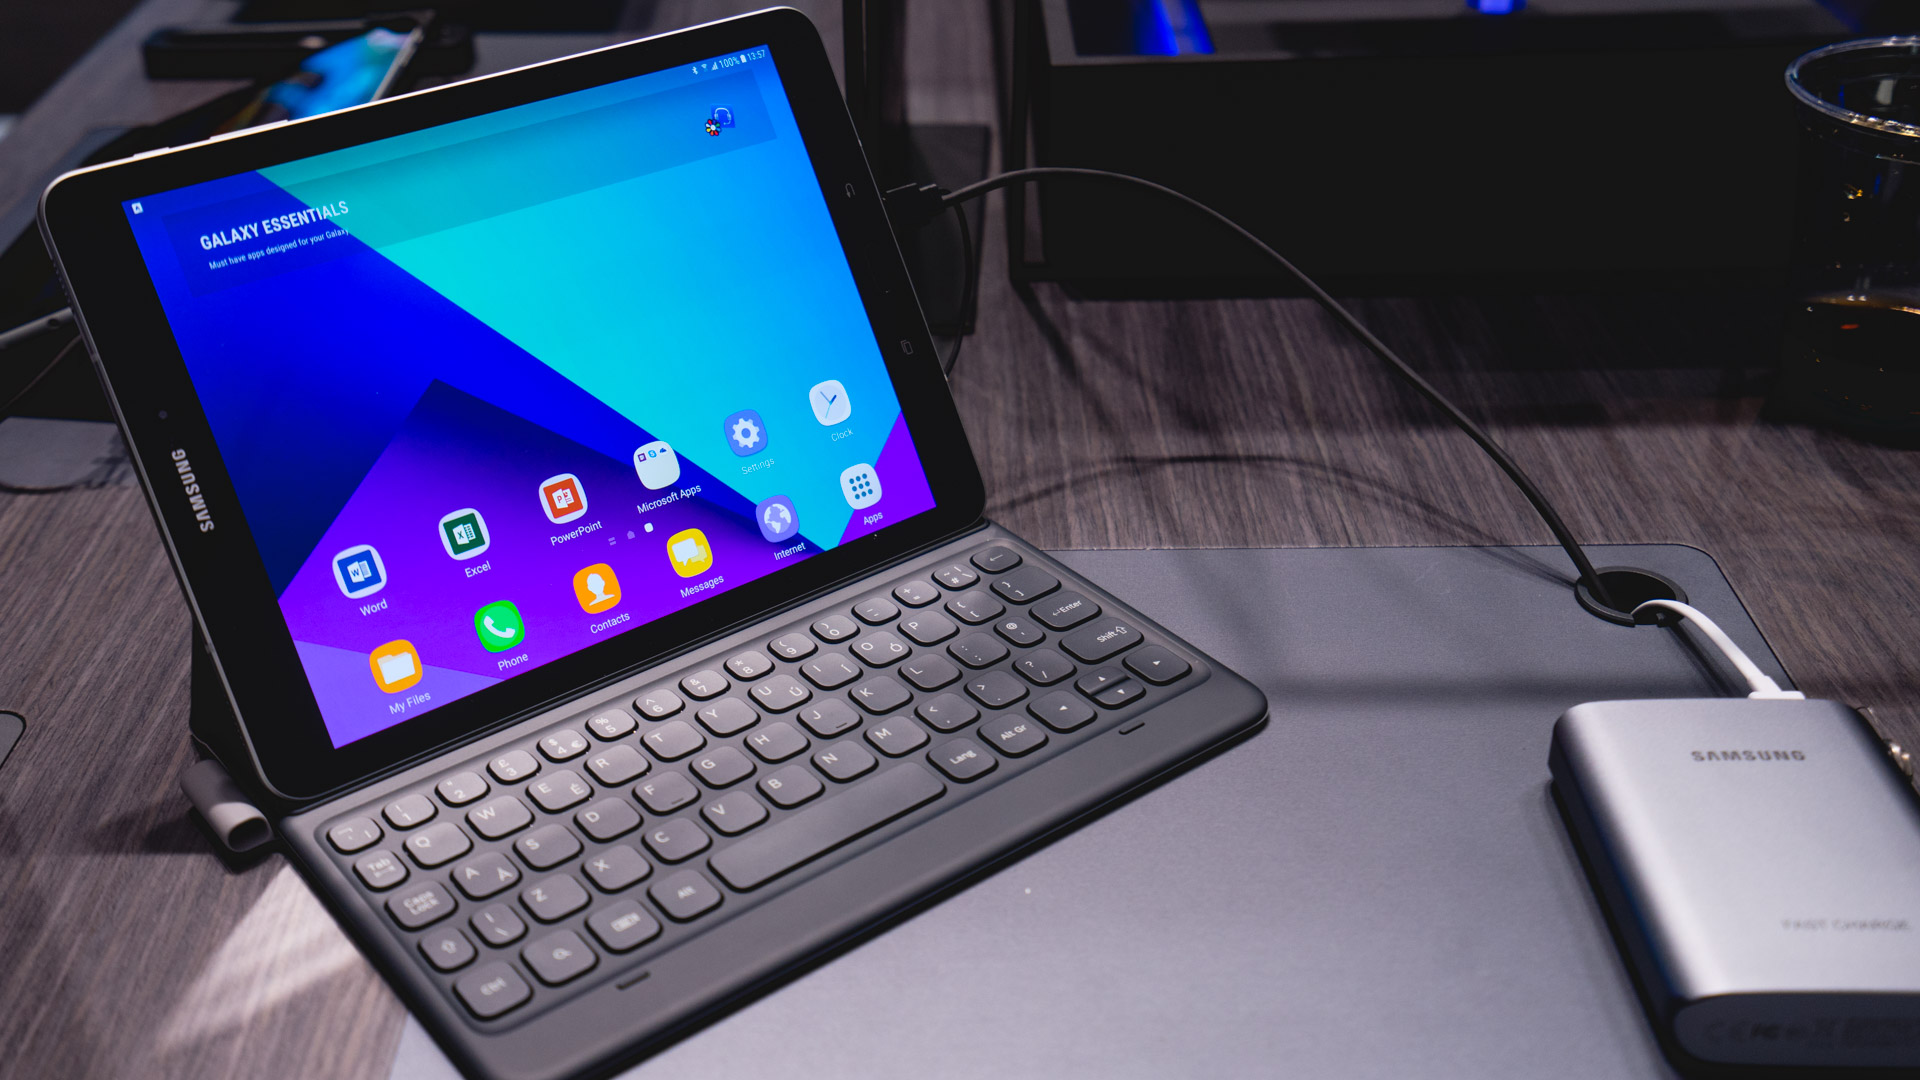 093aed605a7 Top 10: The Best Tablets with Keyboards in 2019 (Windows, Android, iPad)